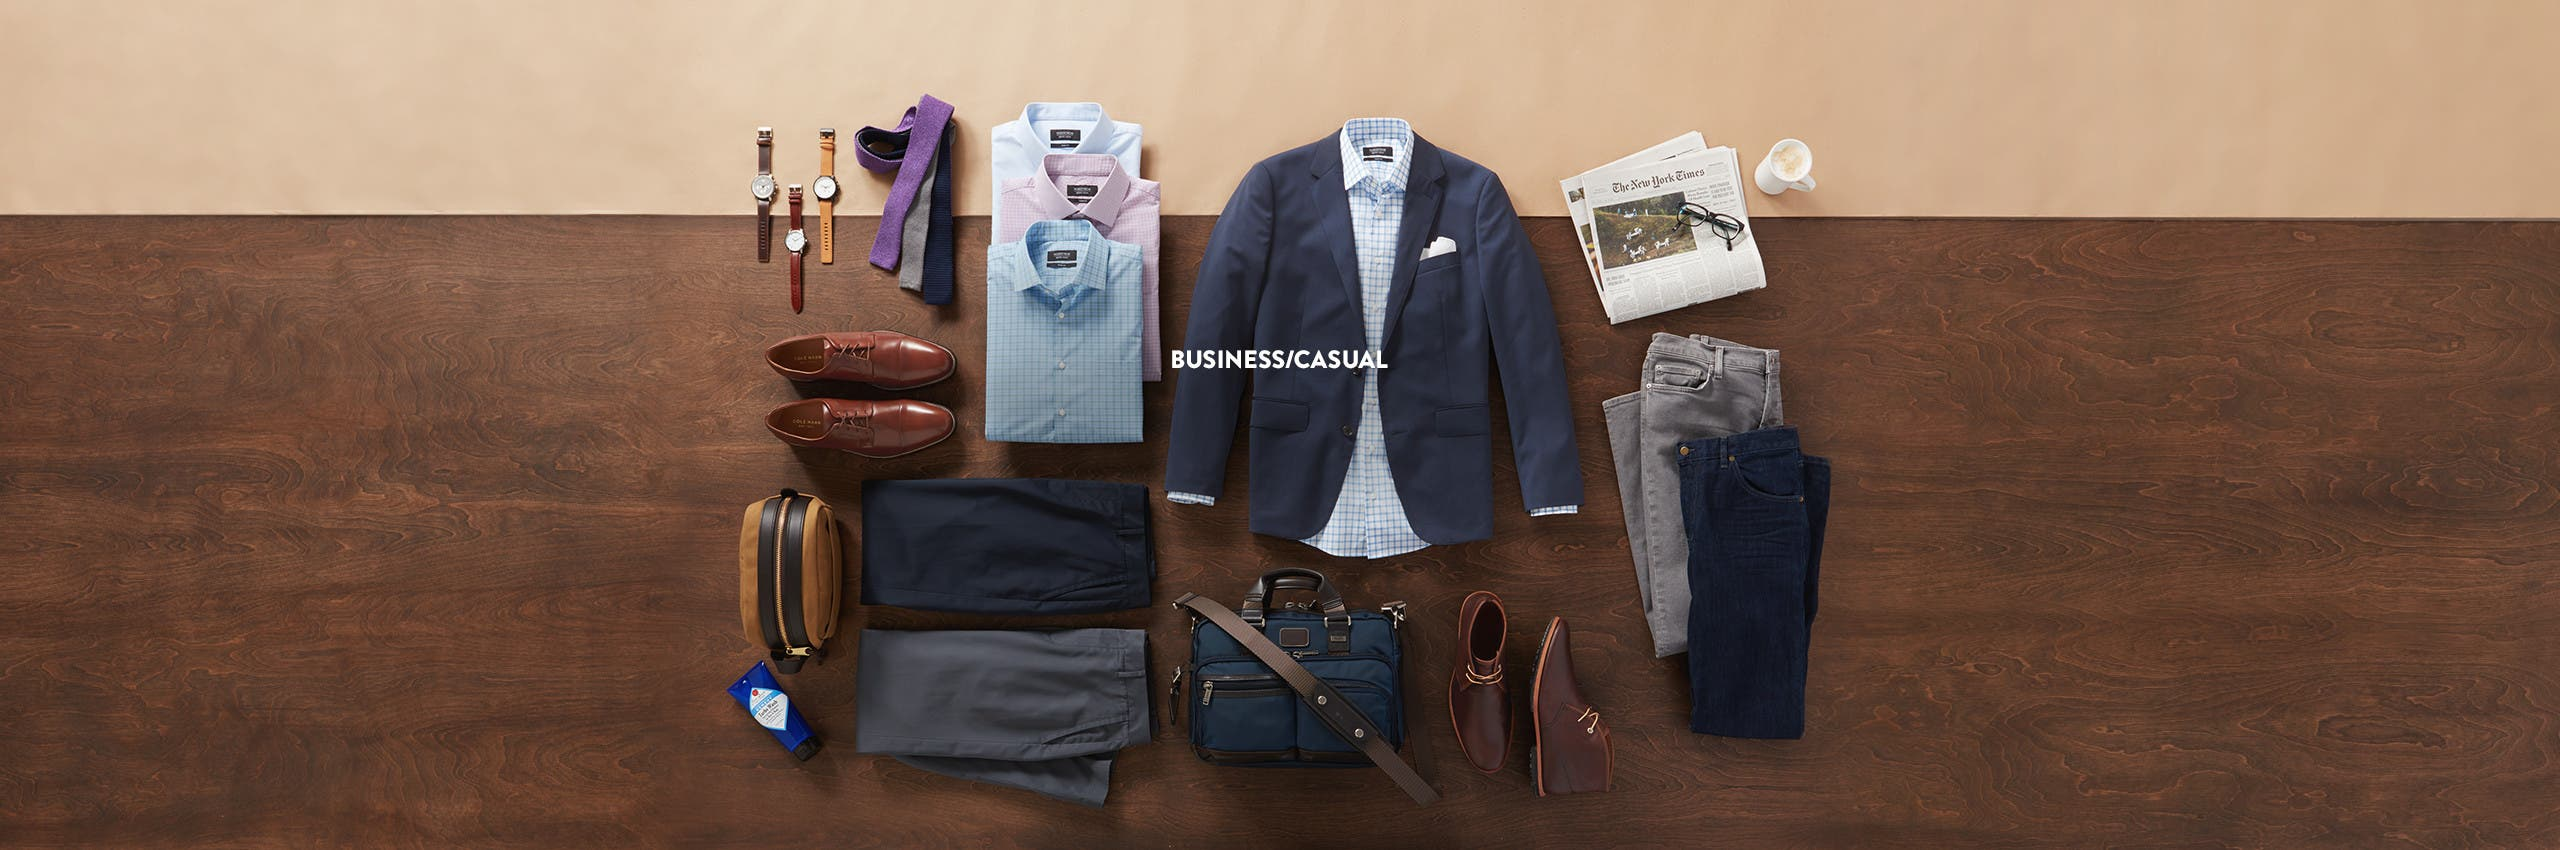 Business-casual clothing for men.